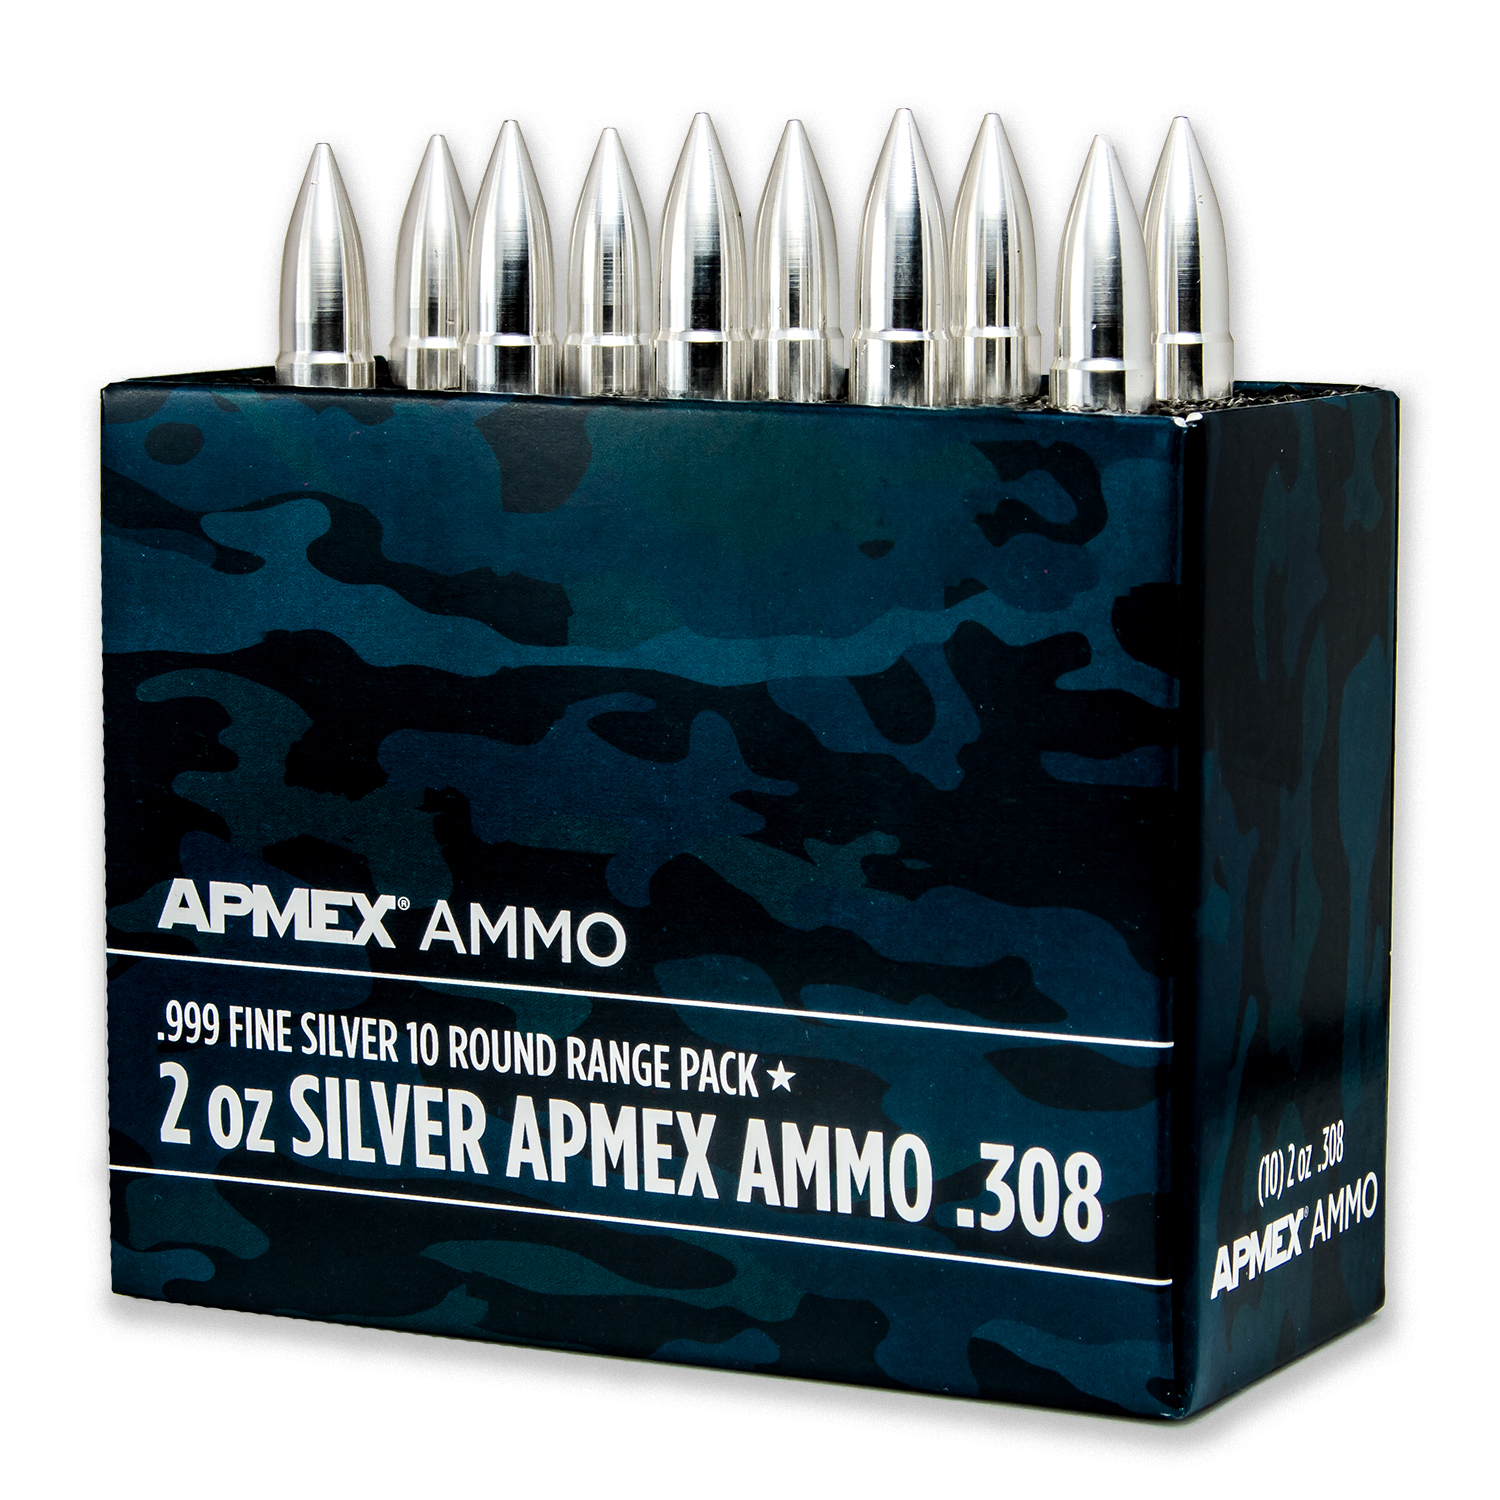 2 oz Silver Bullet - .308 Caliber 10-Count Range Pack